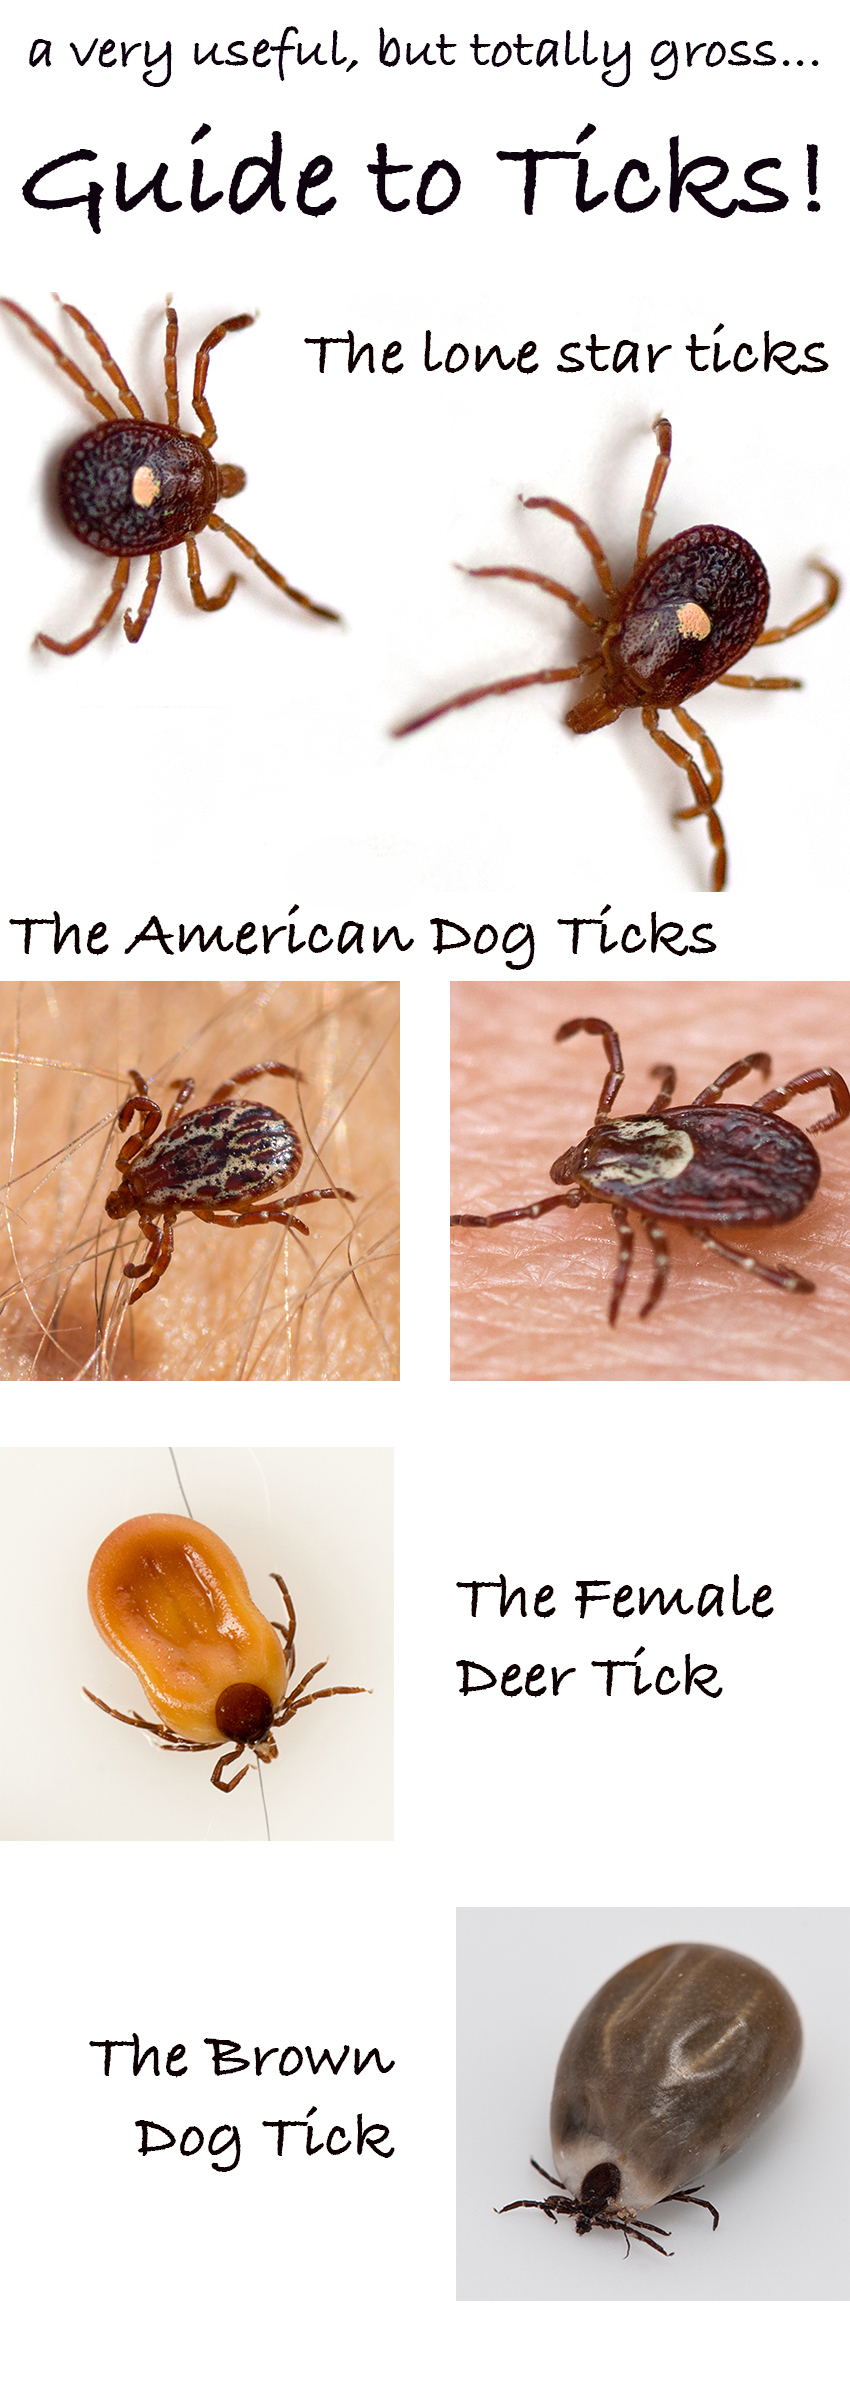 Tick dating site